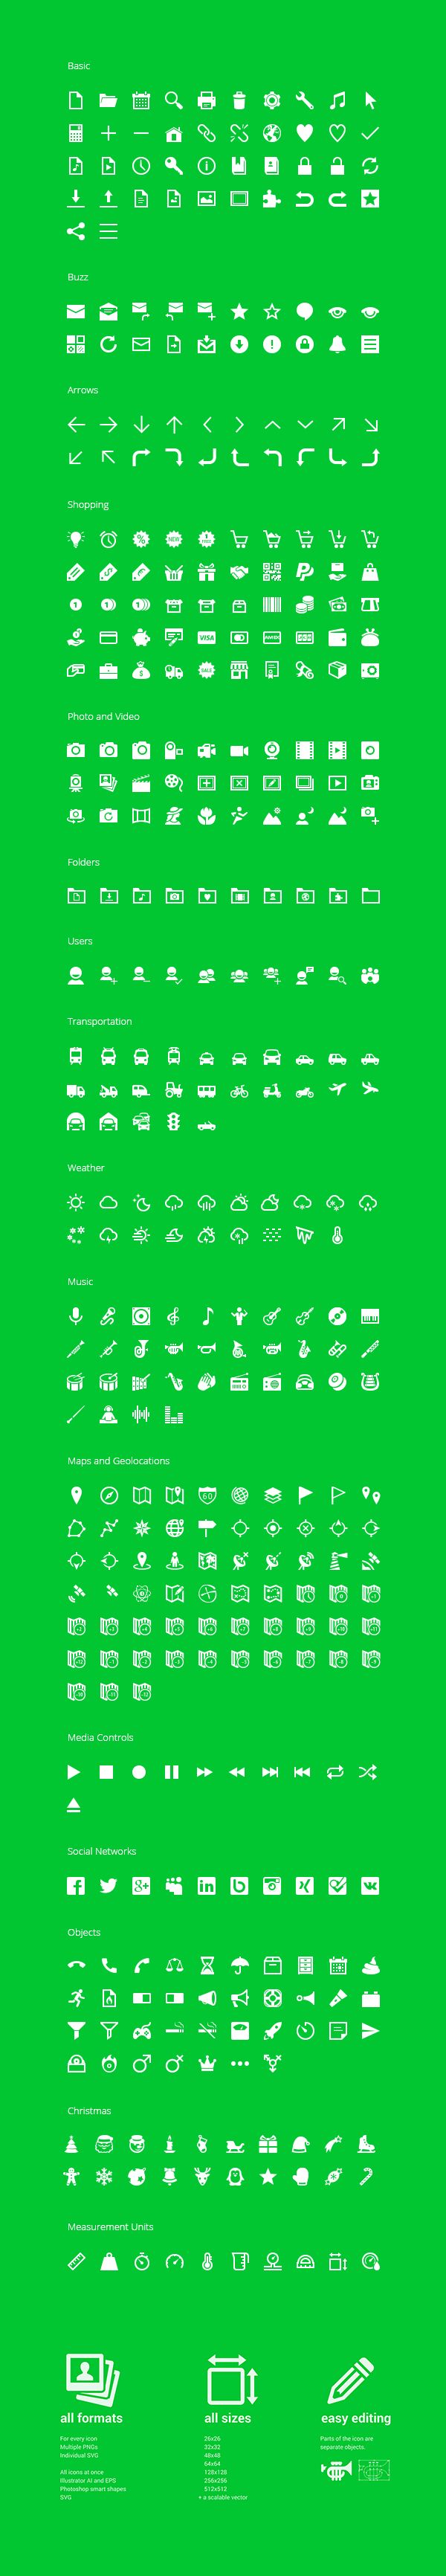 350 Free Android Icons | GraphicBurger